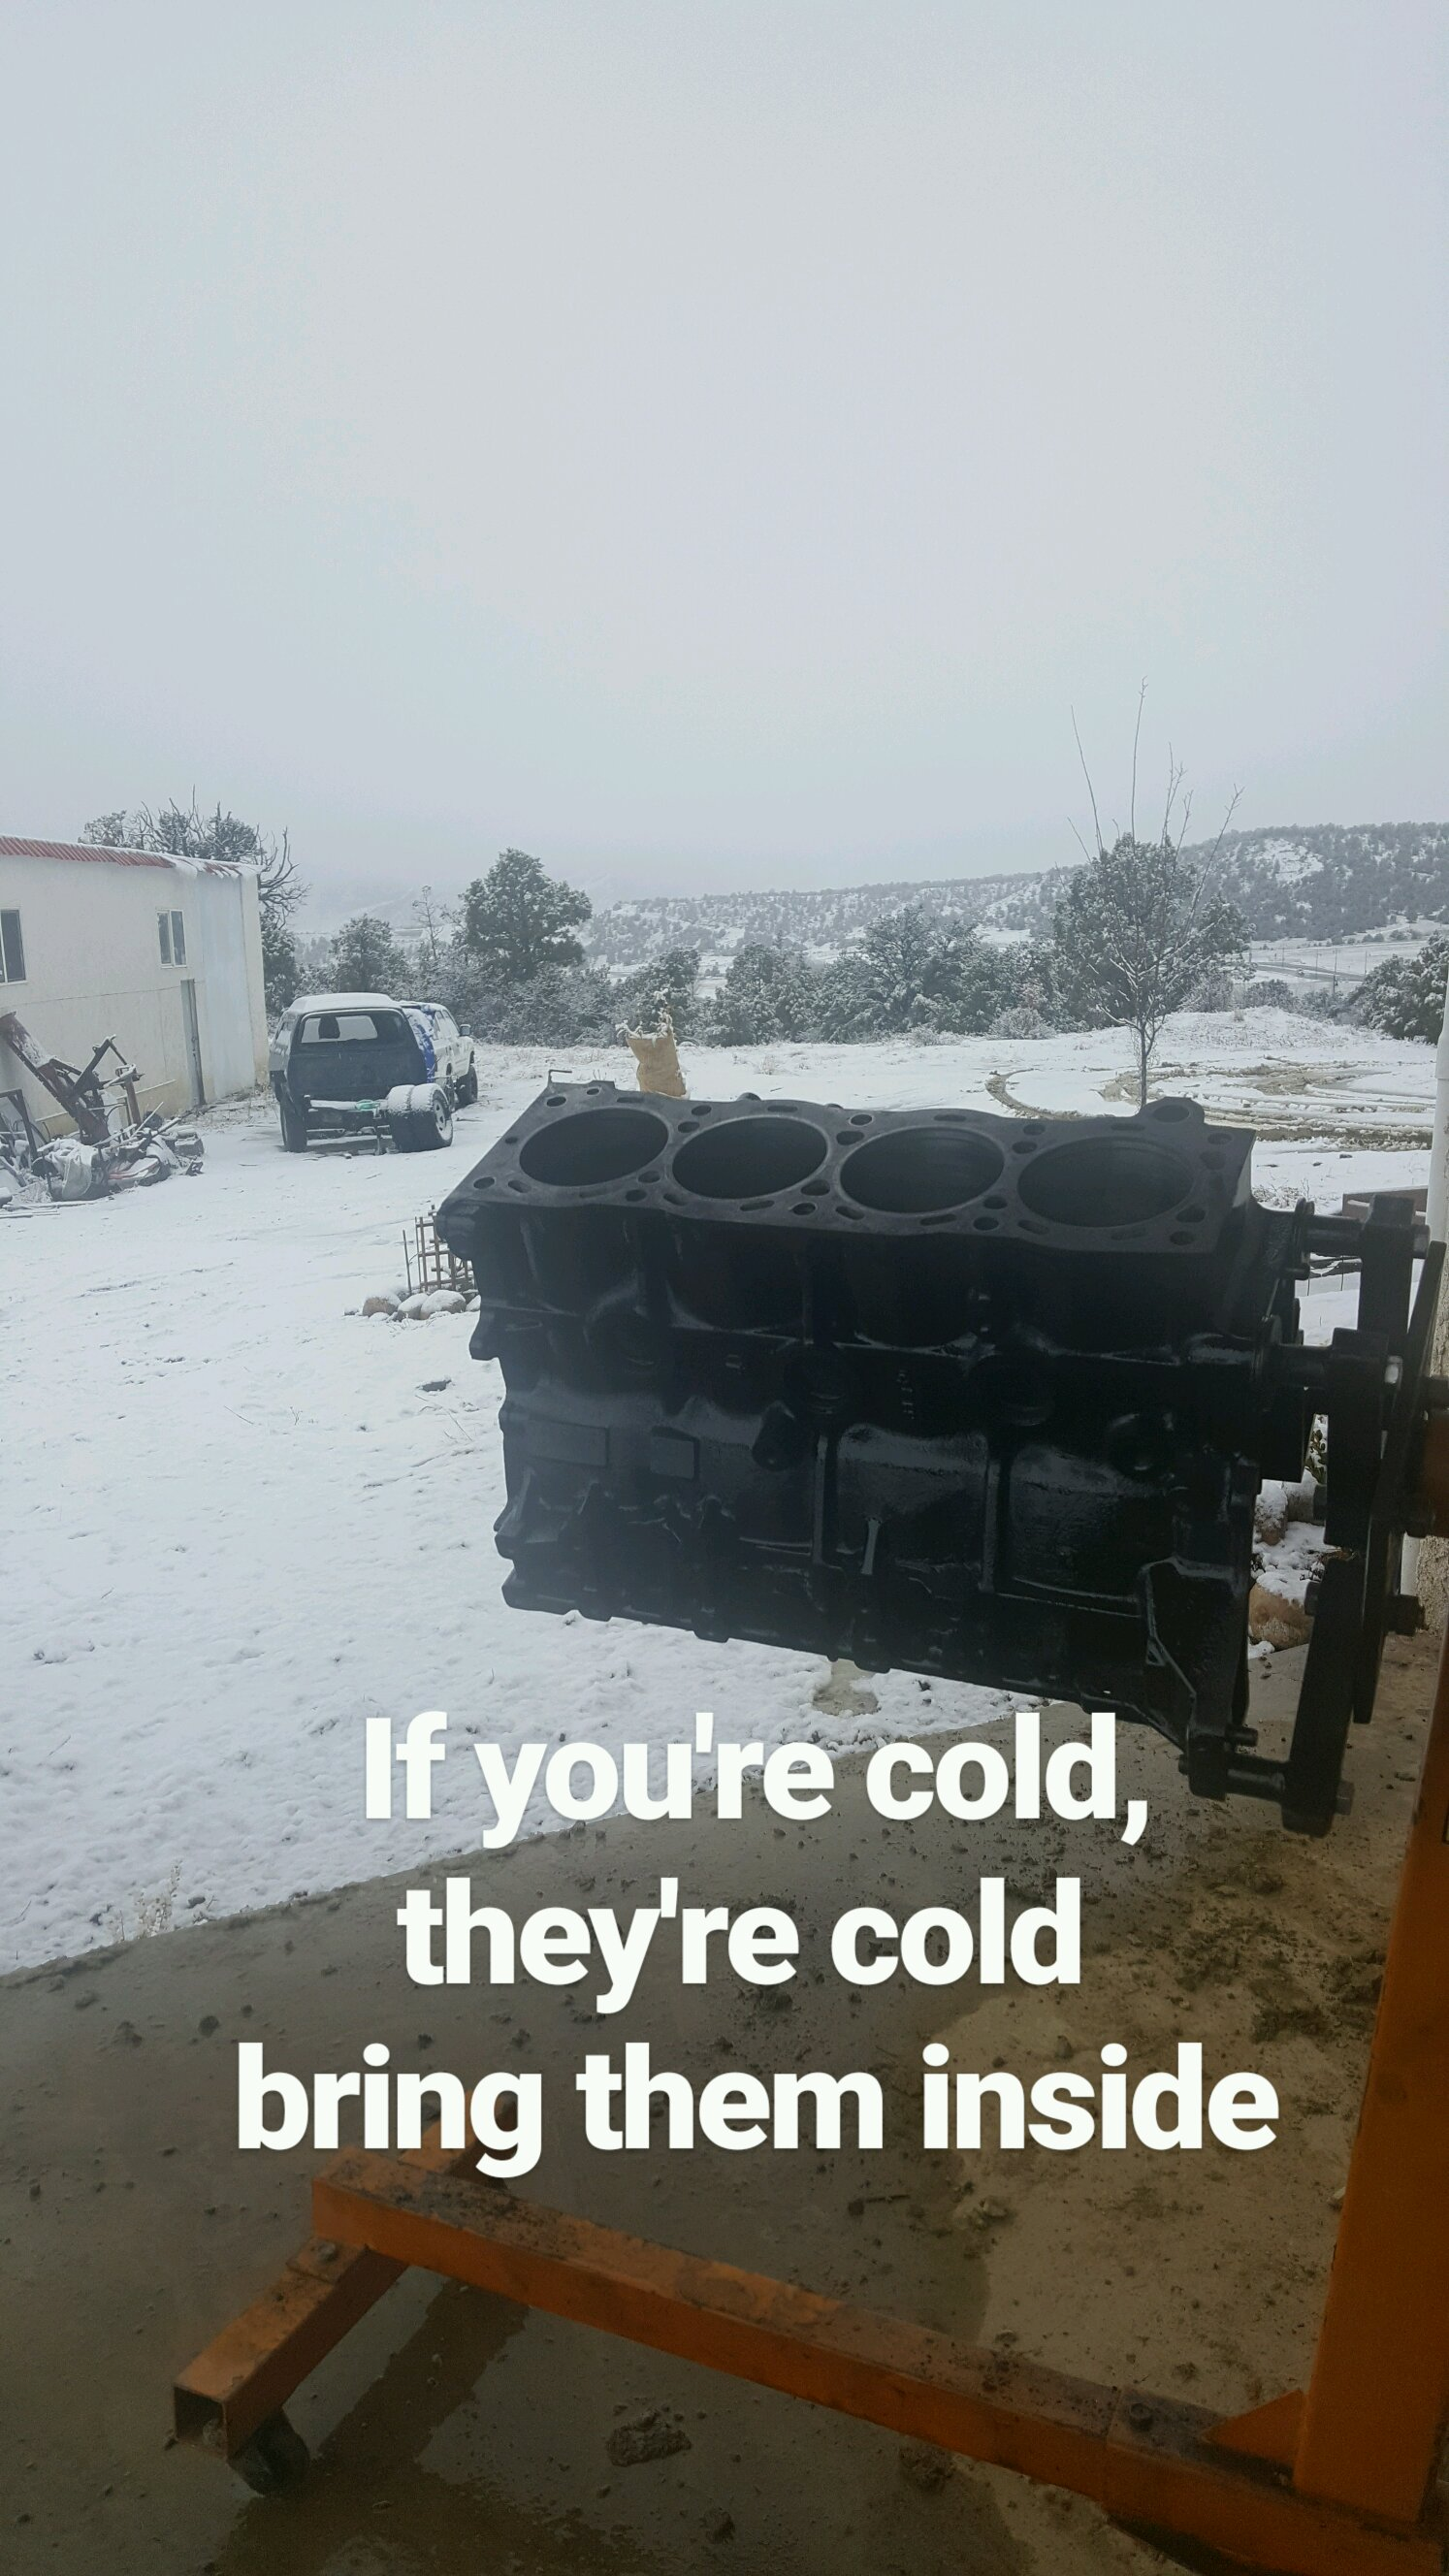 Gotta do a 22re install in the snow  FML